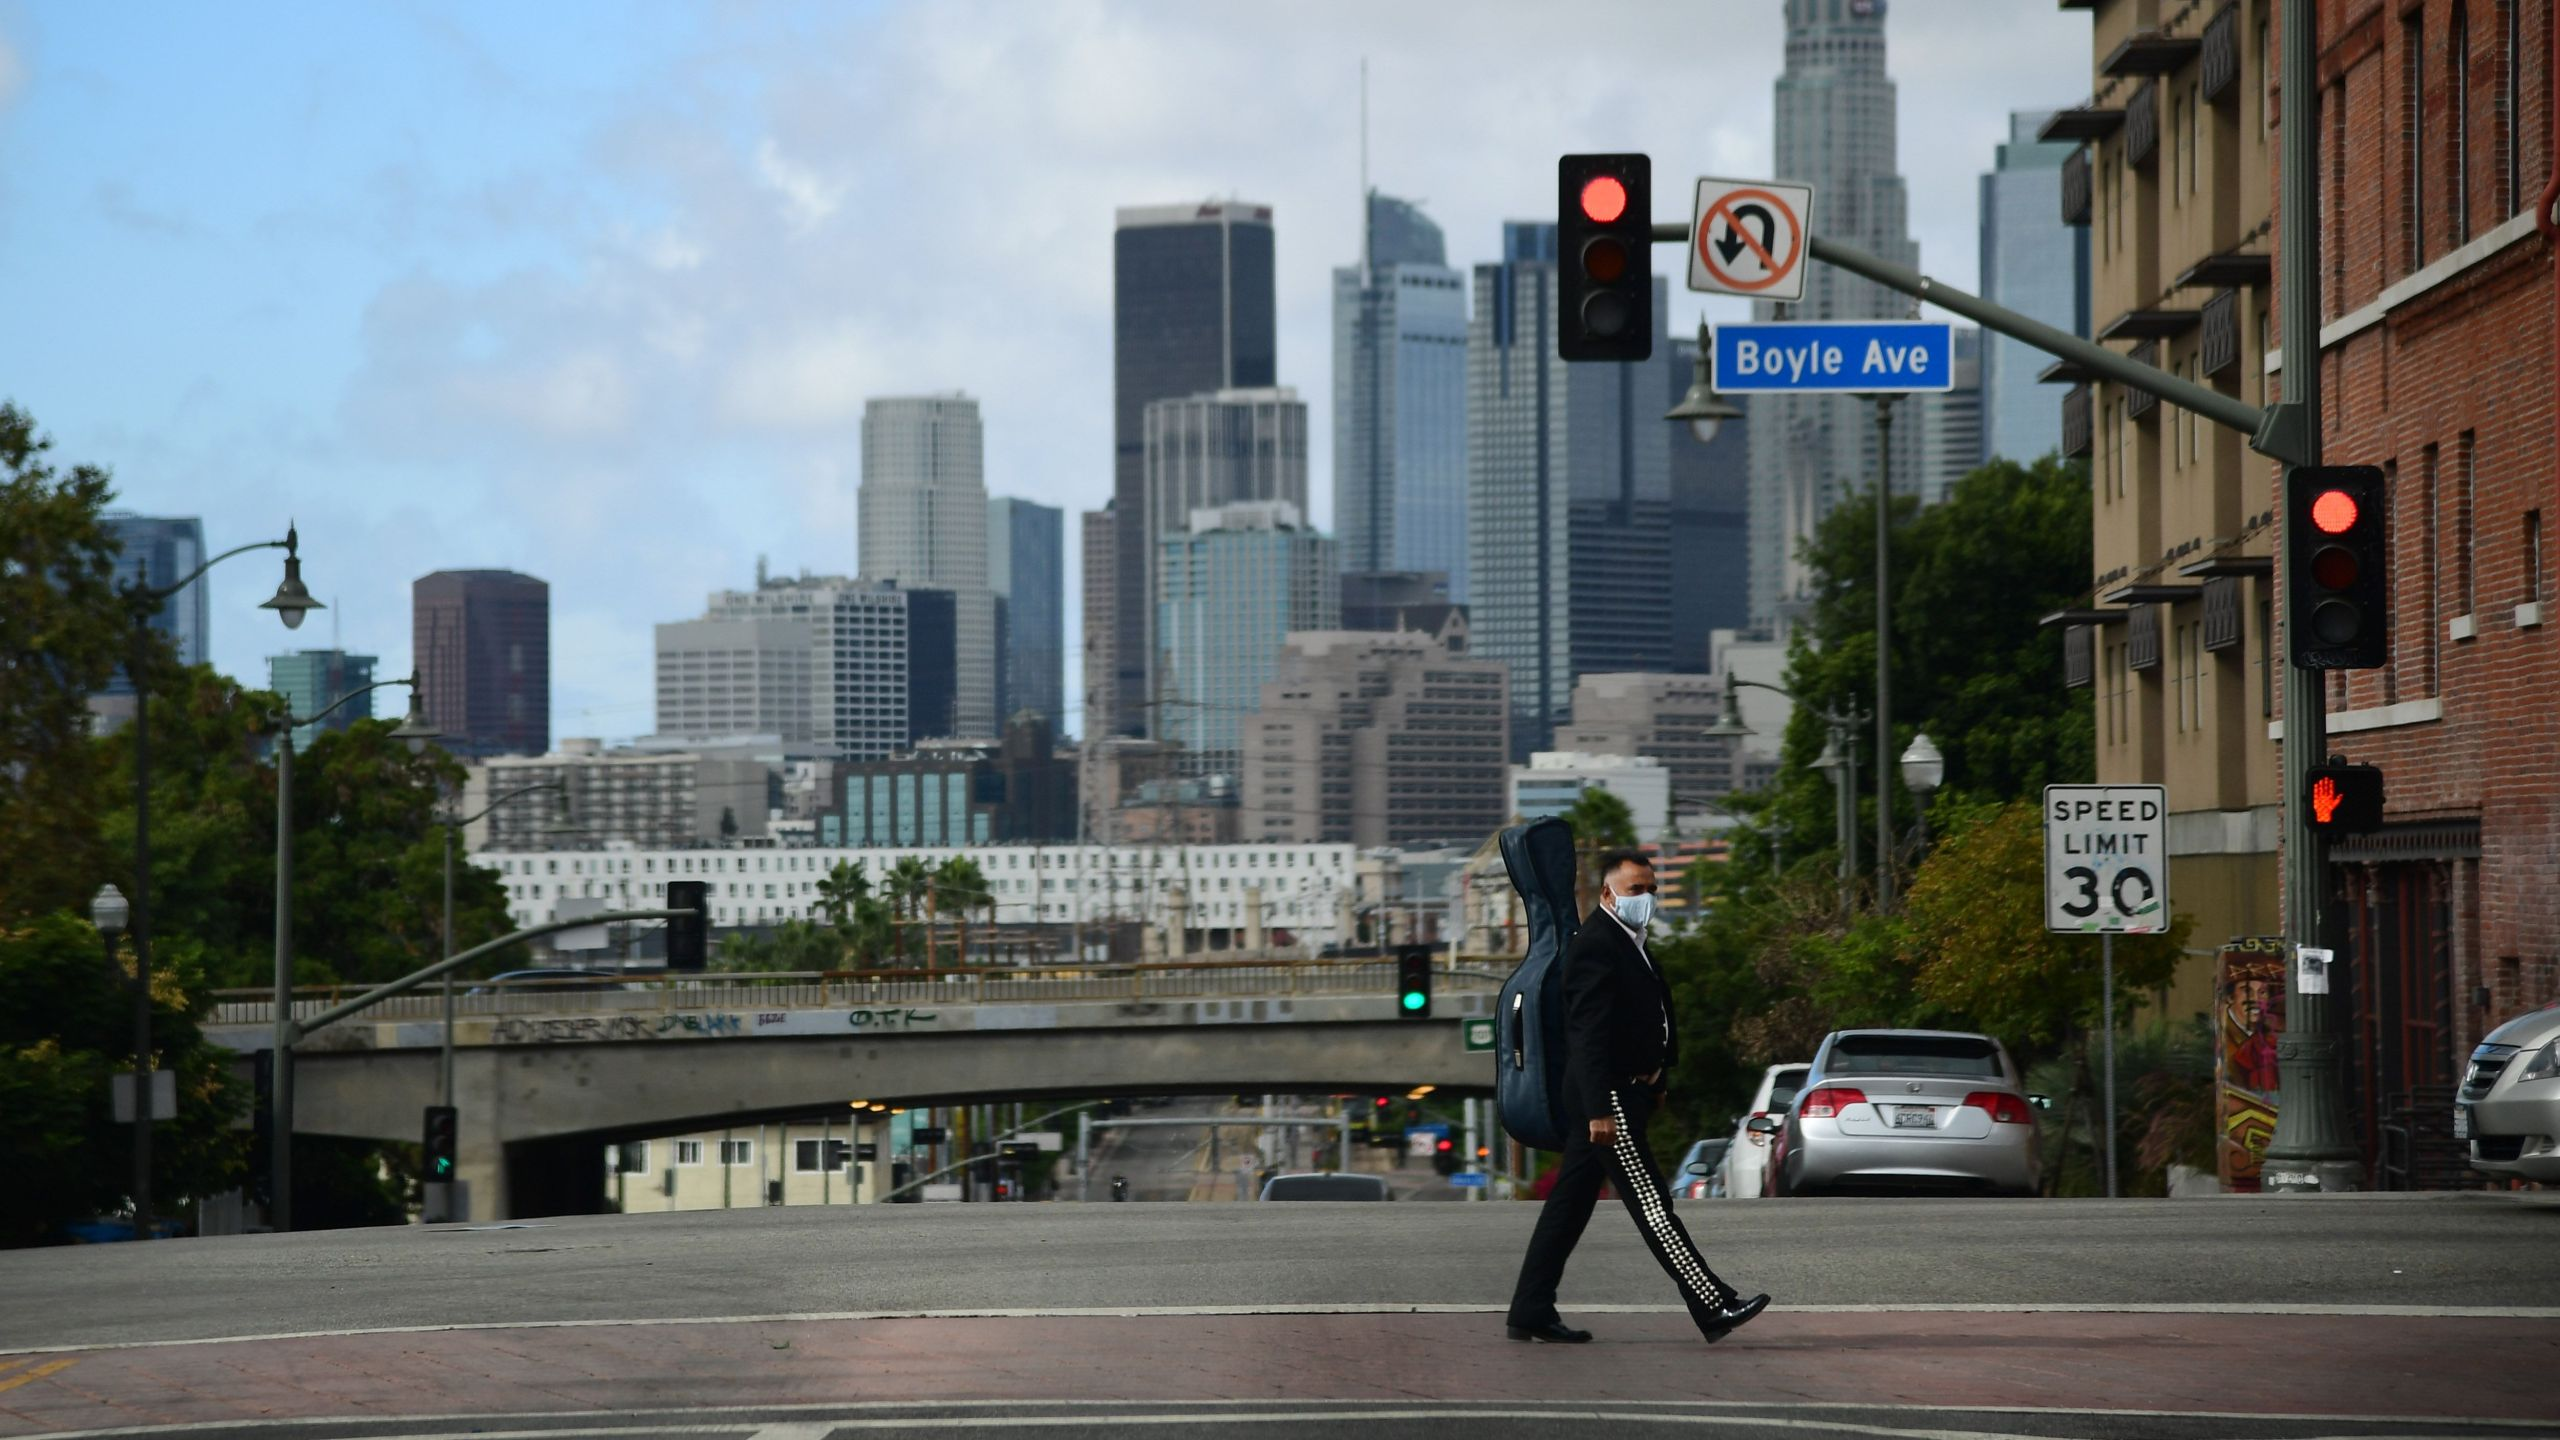 A musician walks towards Mariachi Plaza in Boyle Heights on Nov. 7, 2020. (Robyn Beck / AFP via Getty Images)